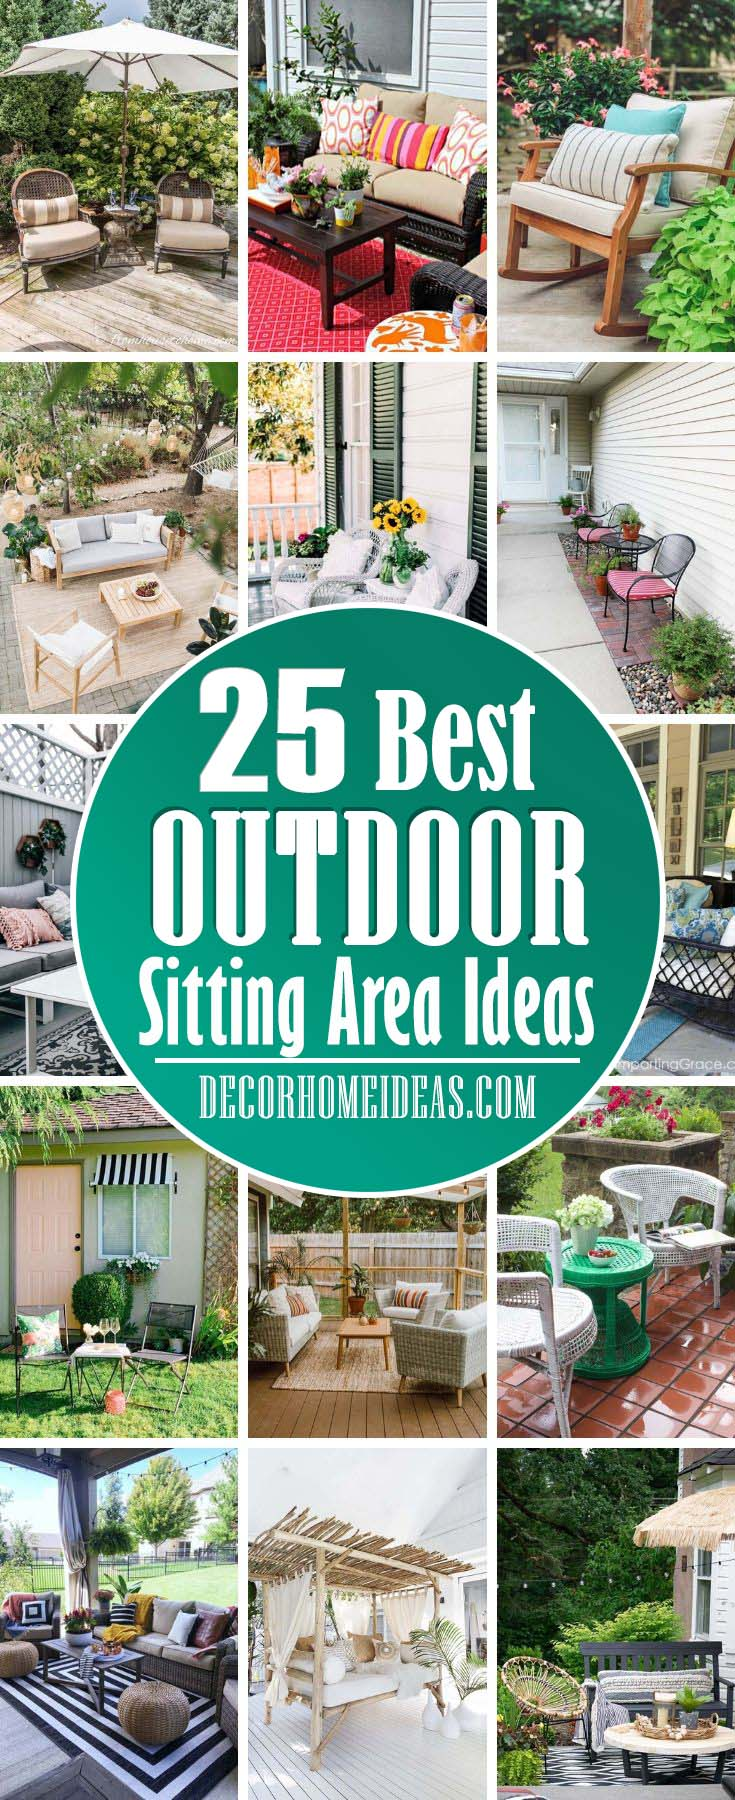 Best Outdoor Sitting Area Ideas. Whether on the backyard, front porch, deck, or patio, you can make use of your home's outdoor space. With the beauty of nature and ambient lighting, these areas make for the perfect gathering place.  #garden #outdoor #sitting #area #decorhomeideas